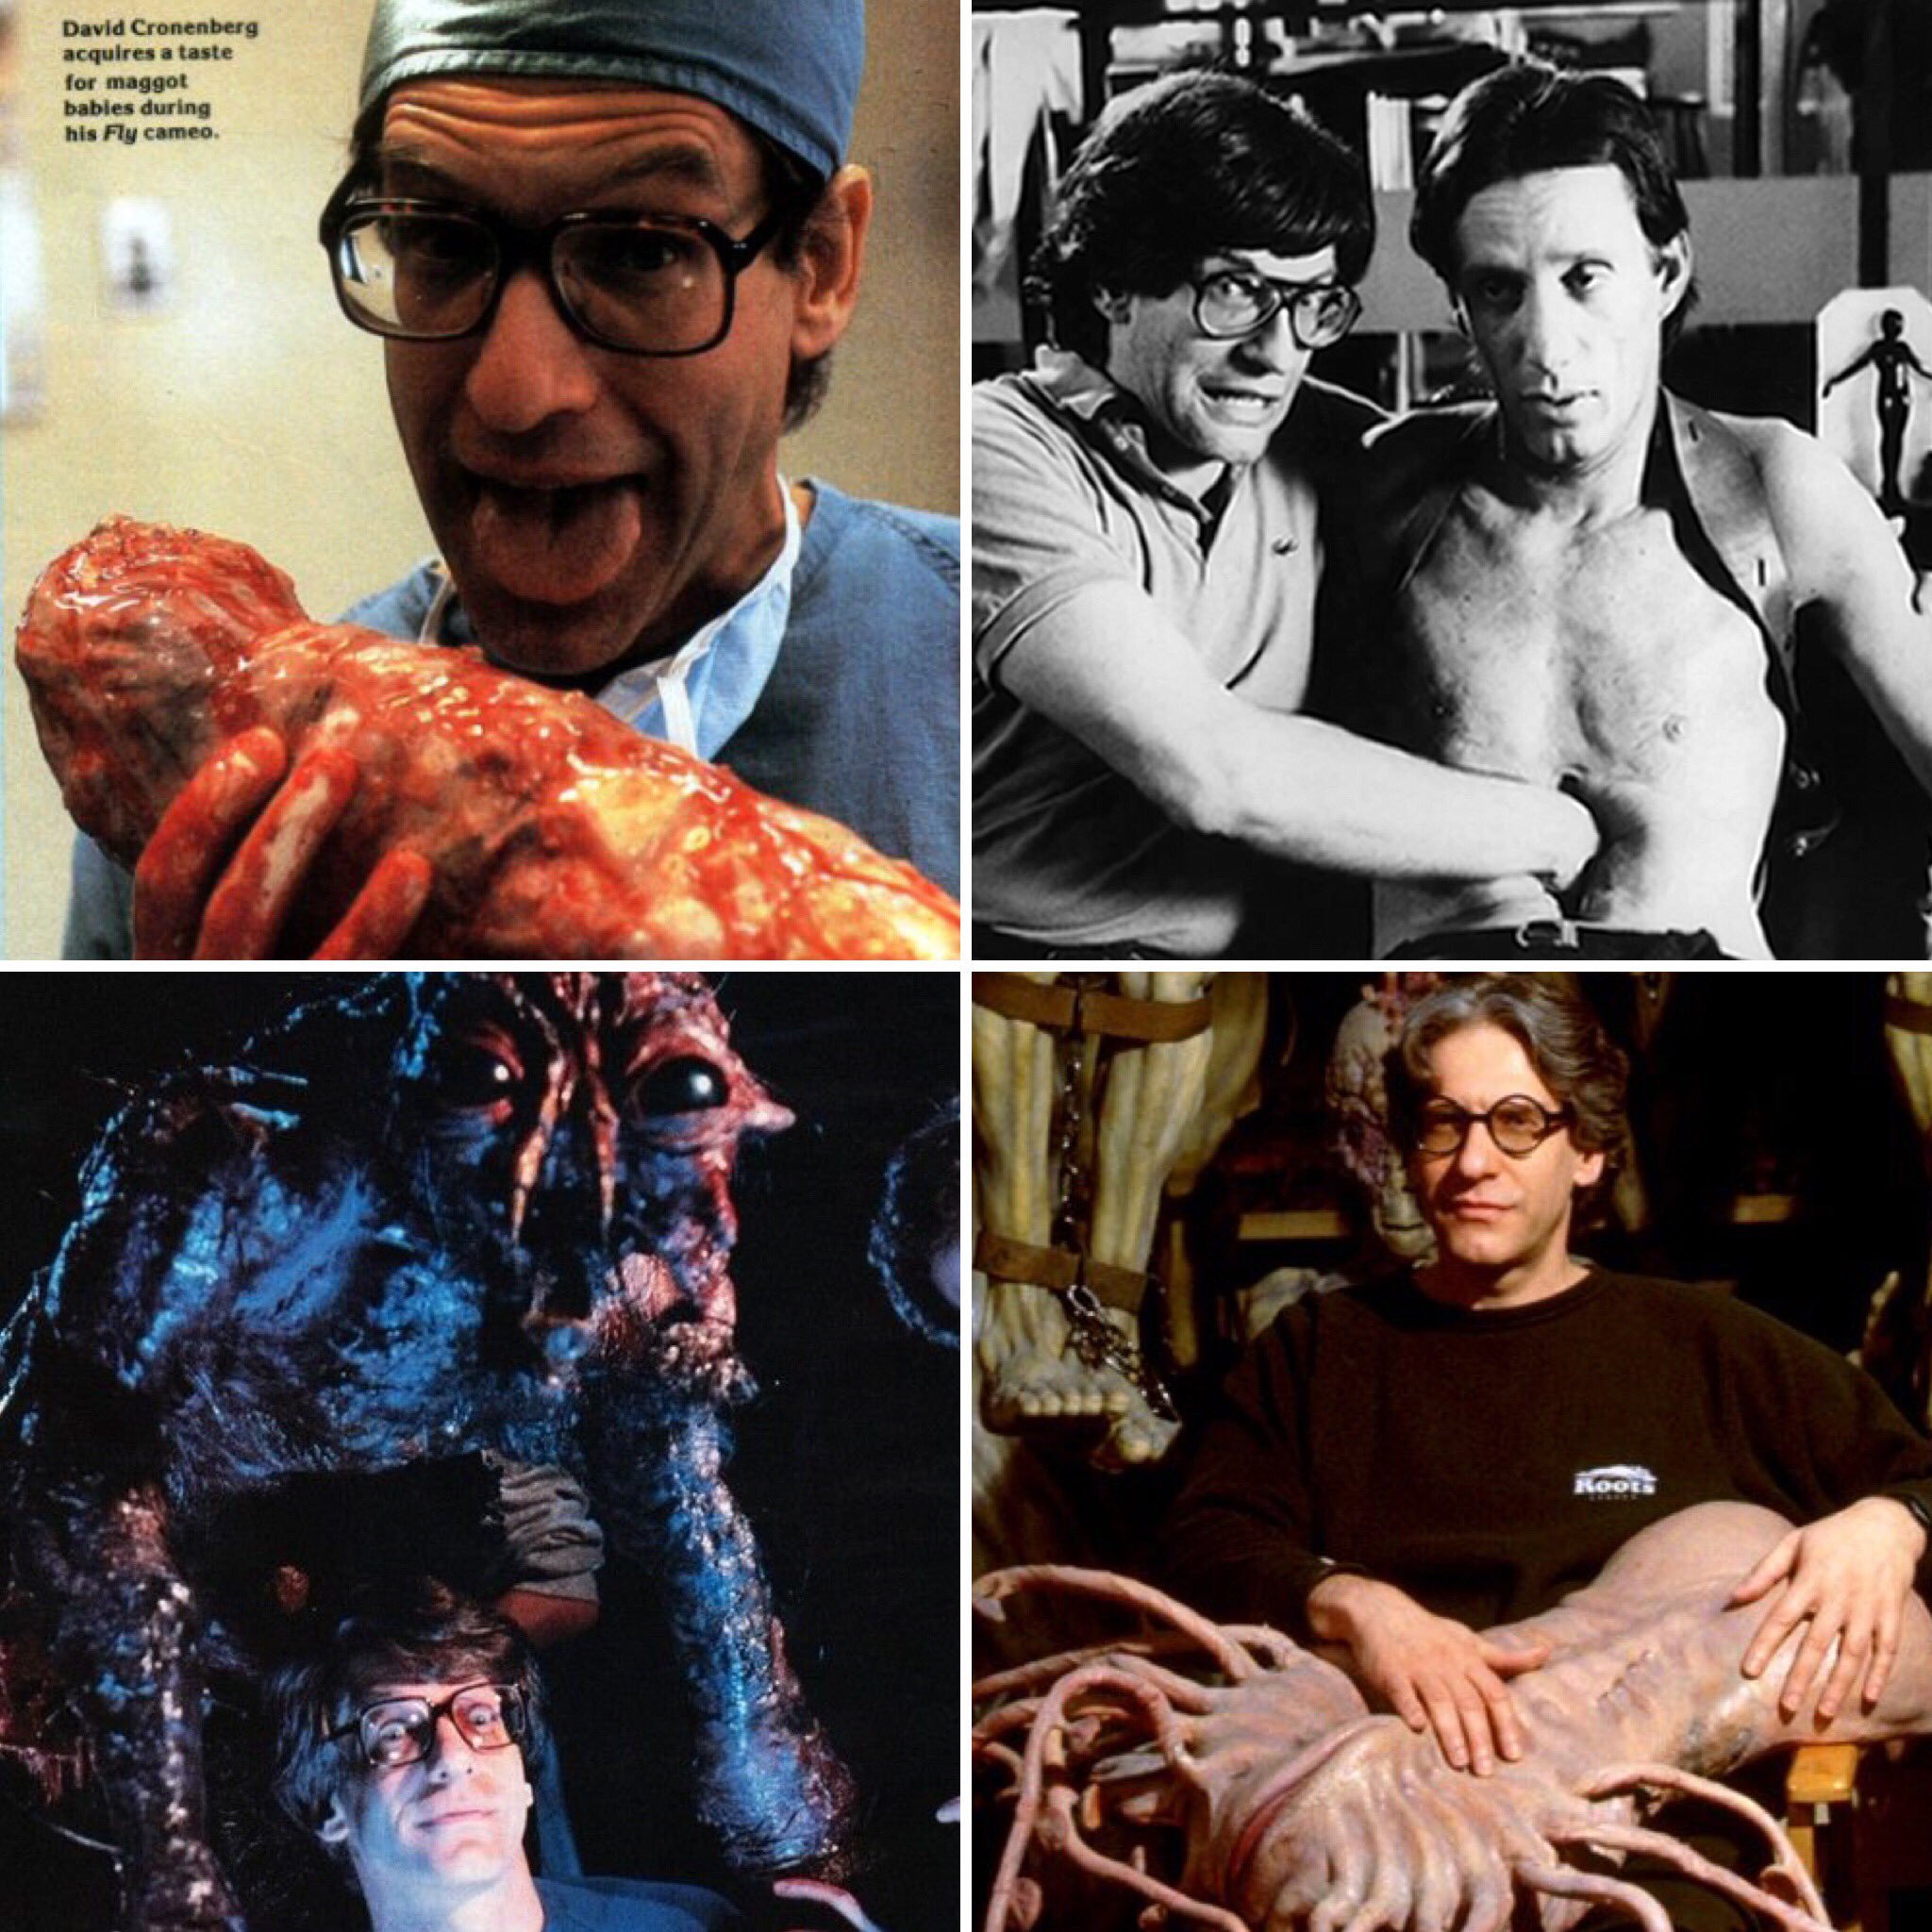 Happy 74th birthday to one of the most brilliant weirdos to ever walk this planet, the amazing David Cronenberg!